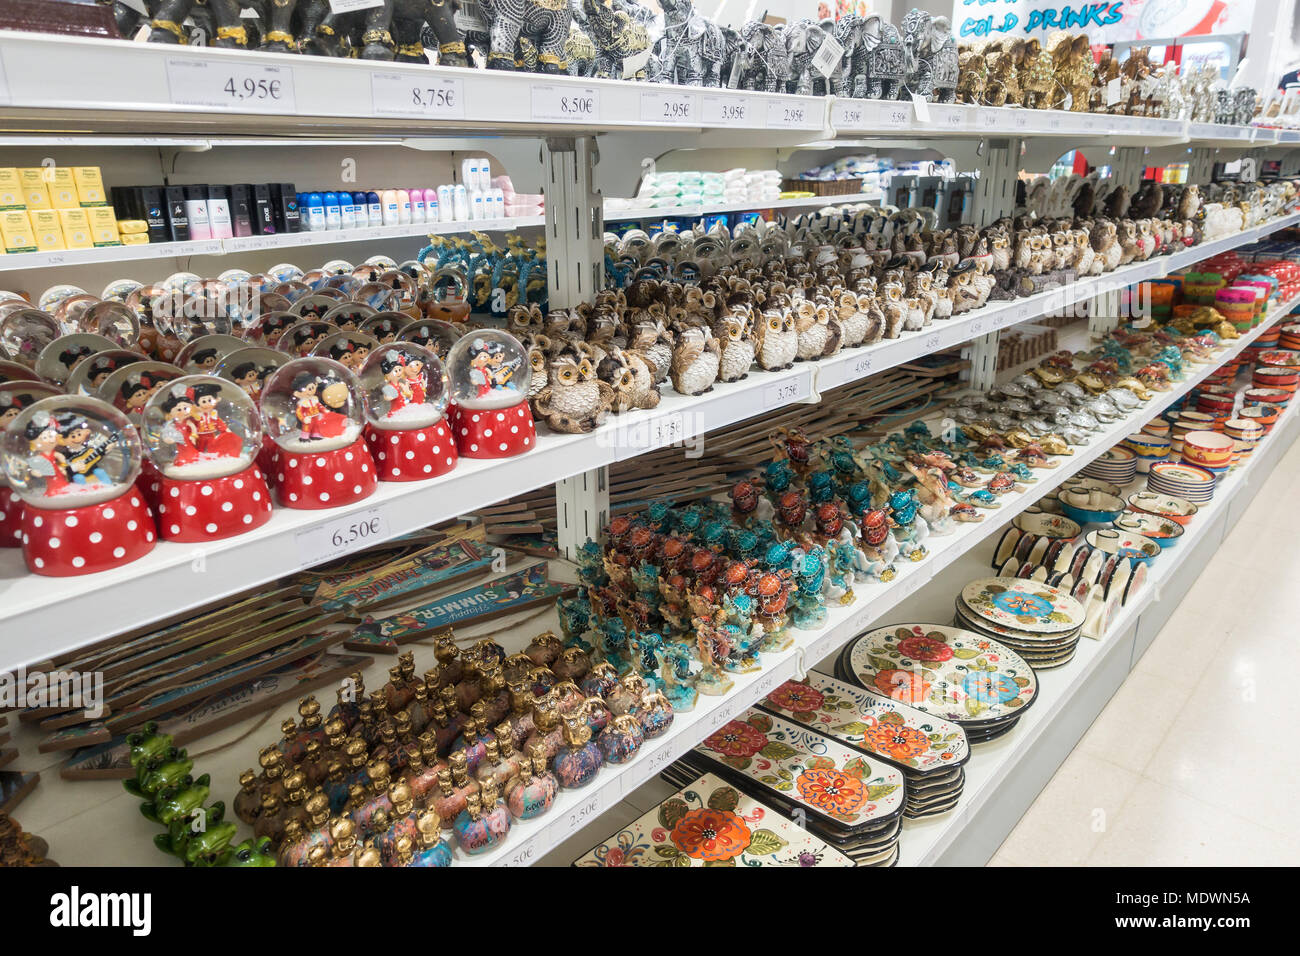 A display of gifts, souvenirs and memorabilia in a souvenir shop. - Stock Image